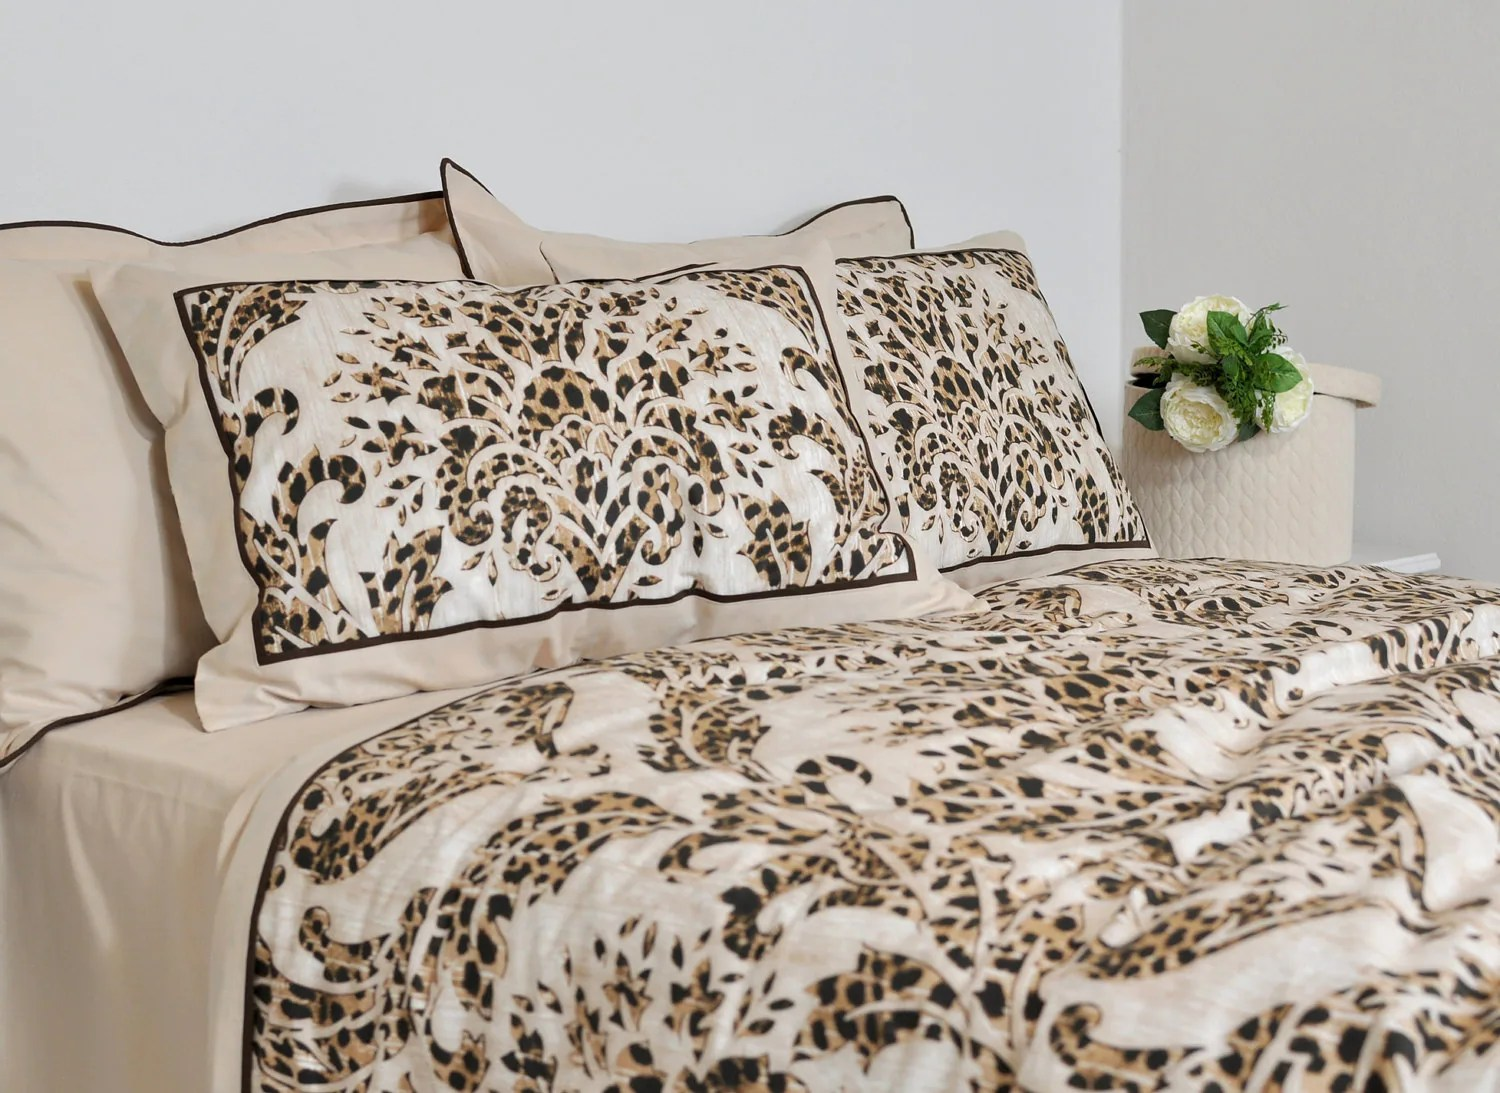 Damask Duvet Leopard Damask Duvet Cover Set In Brown Beige For Full Queen King Size Bordered Bedding In Leopard Print Bohemian Style Boho Bedding